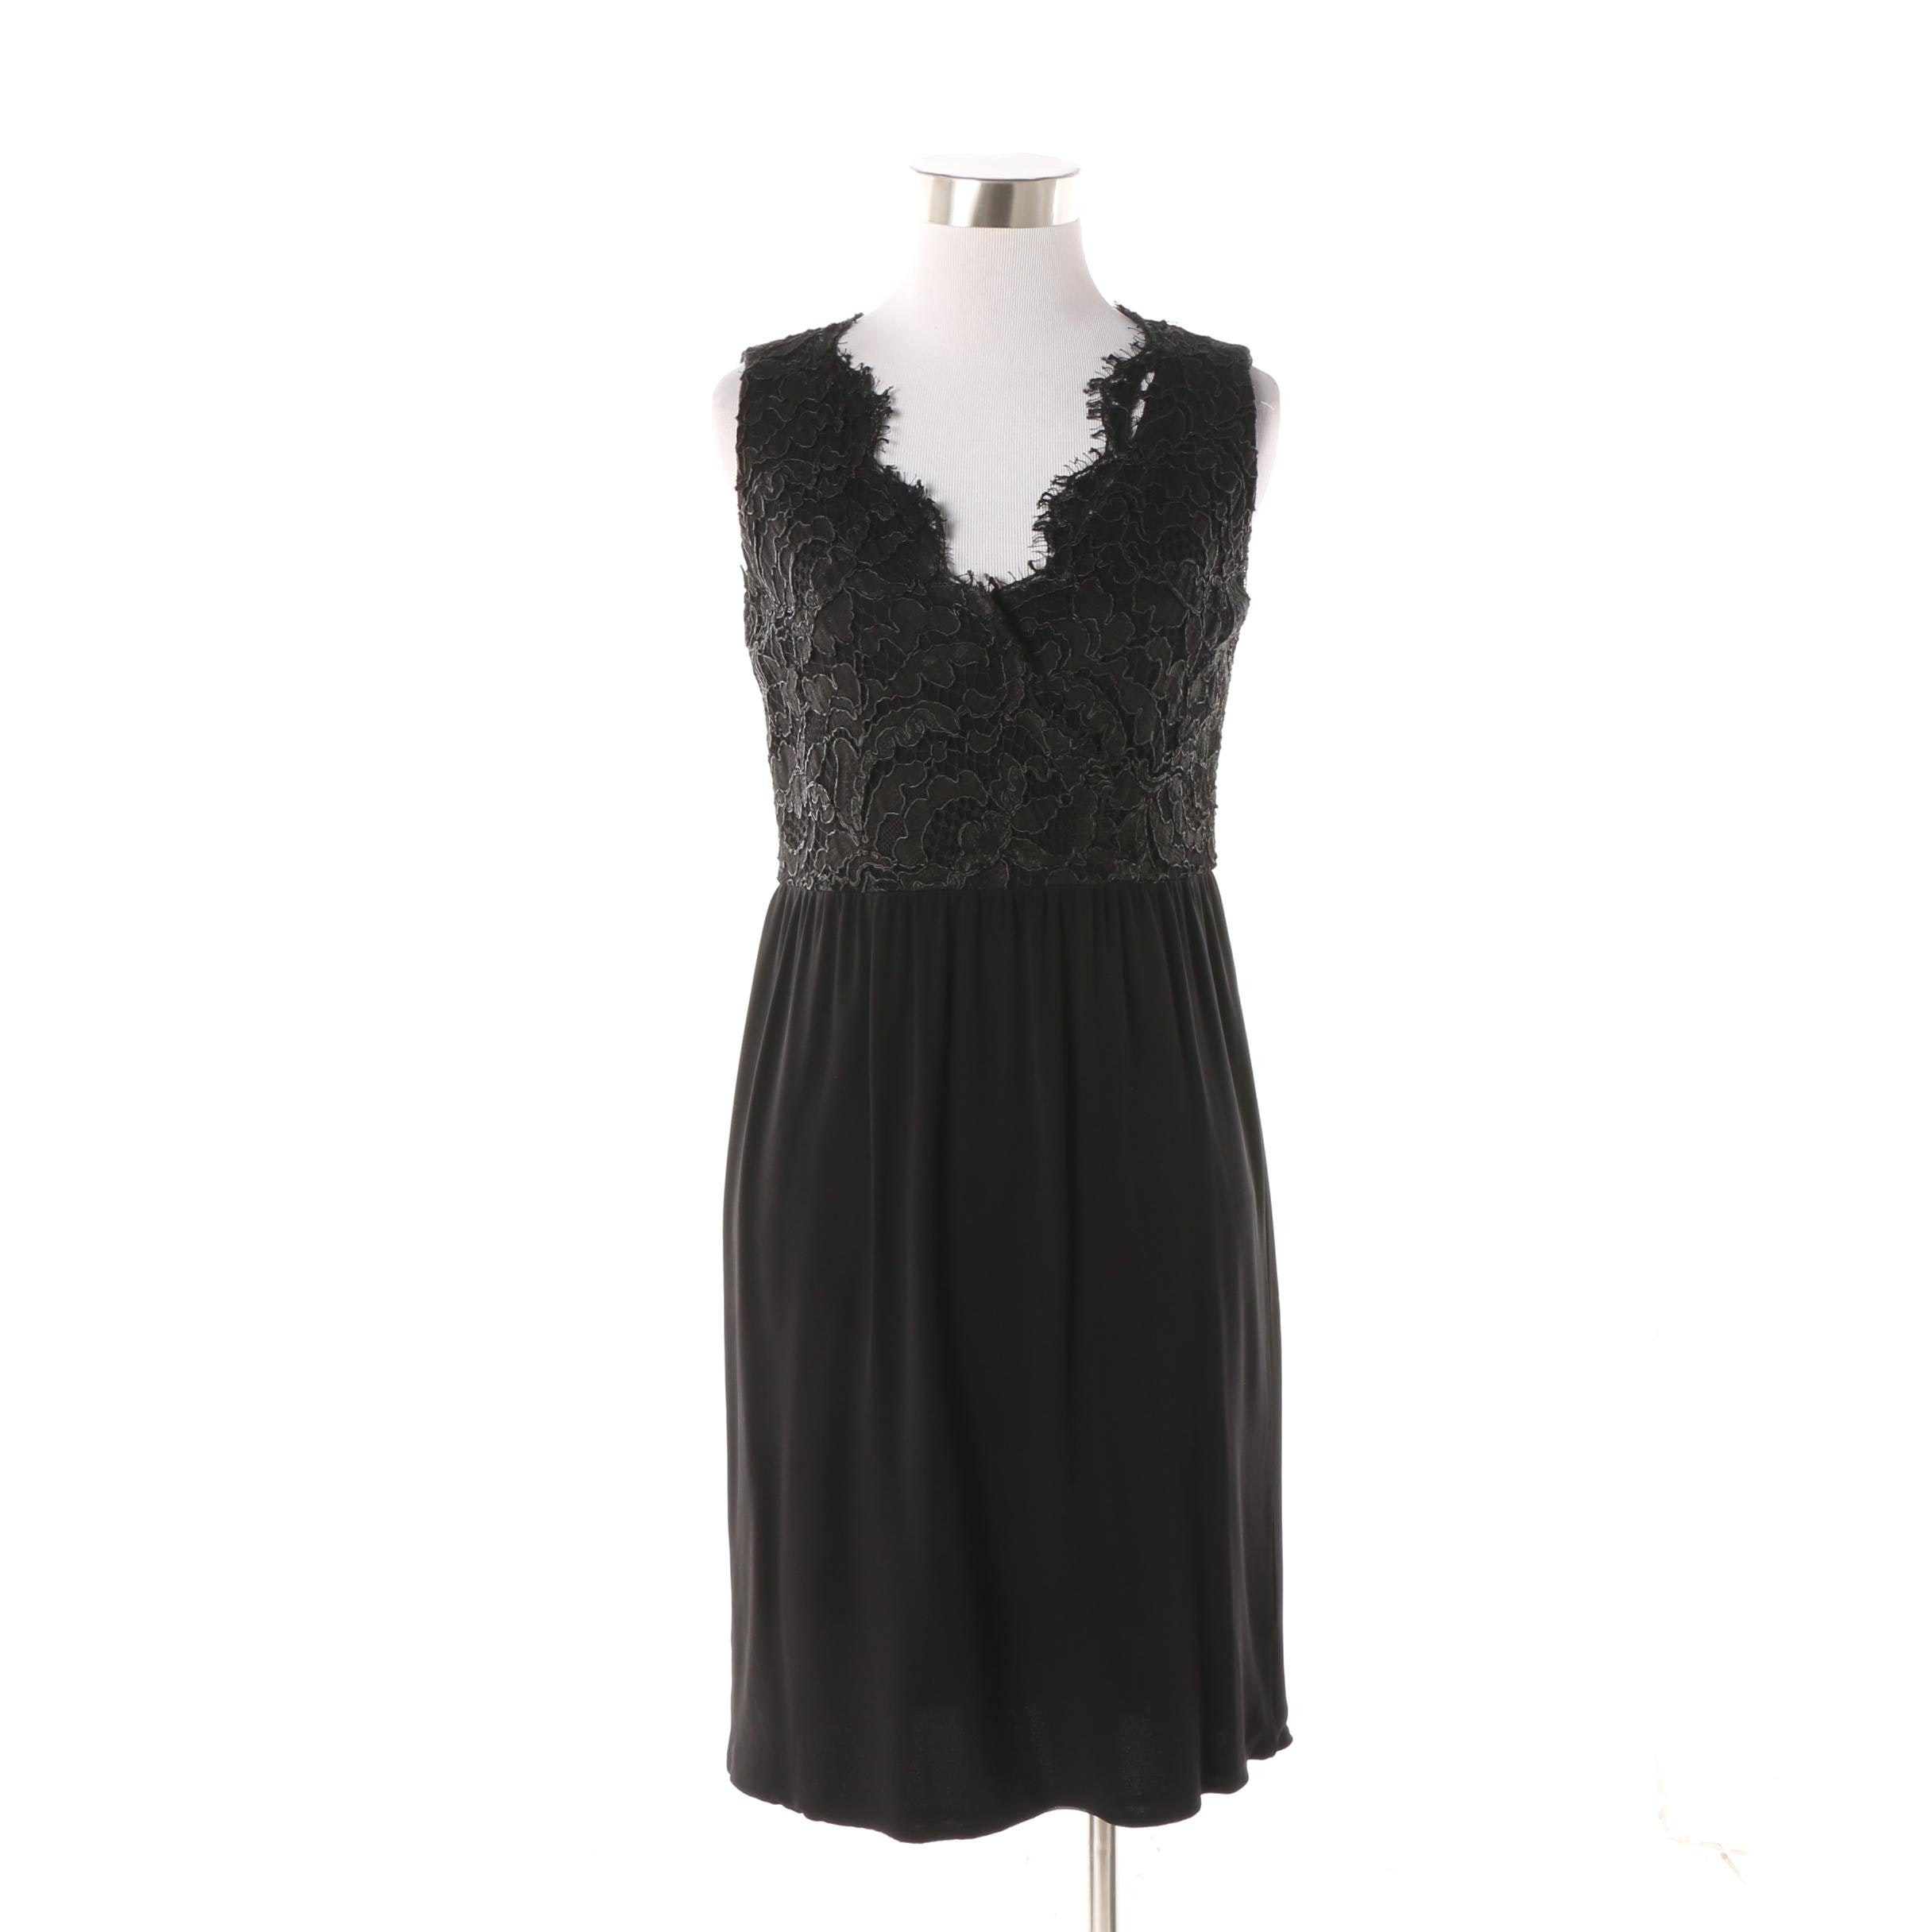 Gucci Black Lace Bodice Sleeveless Cocktail Dress